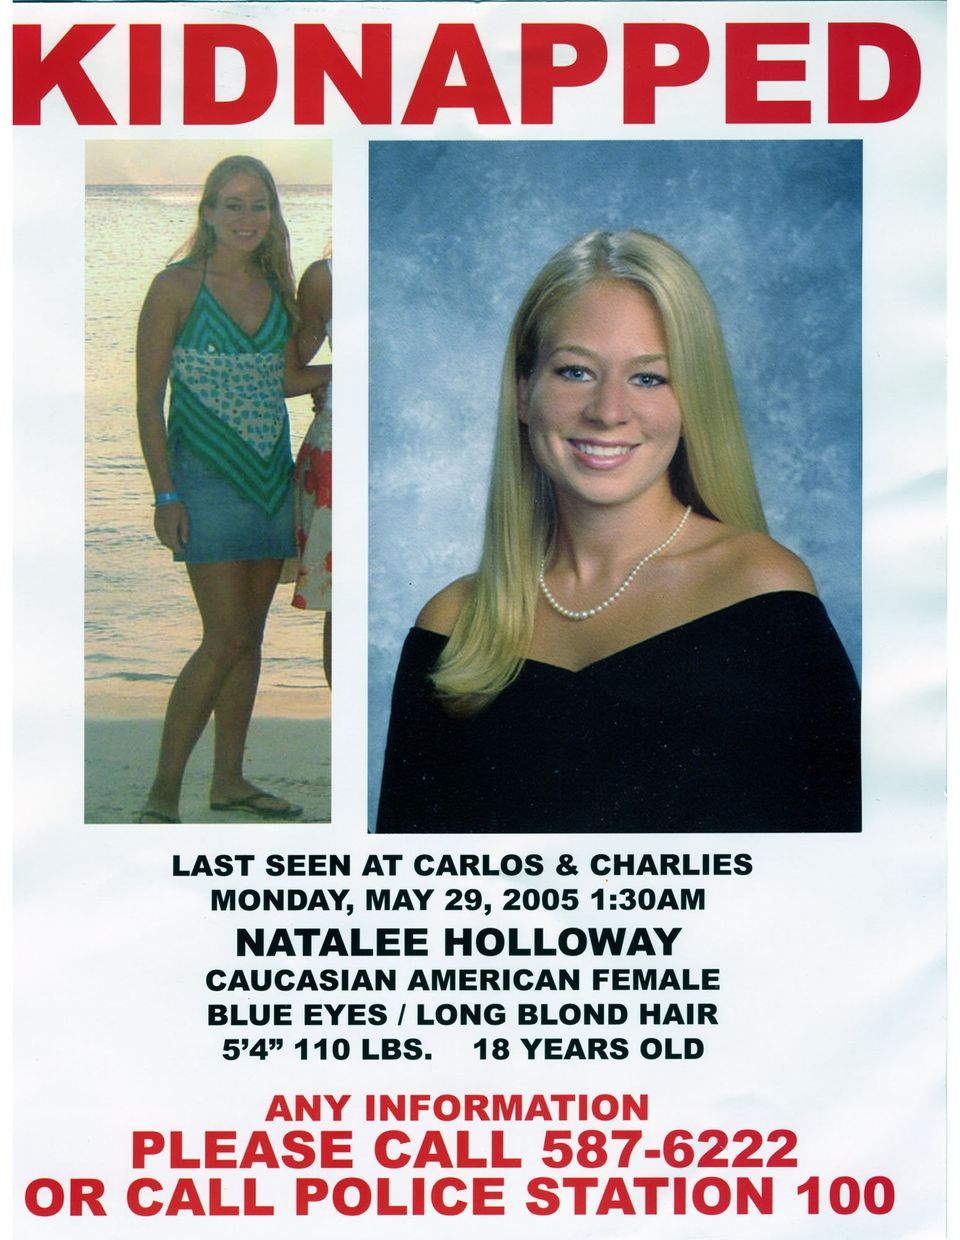 This poster which was prepared and released by the Holloway family is seen Friday, June 3, 2005.